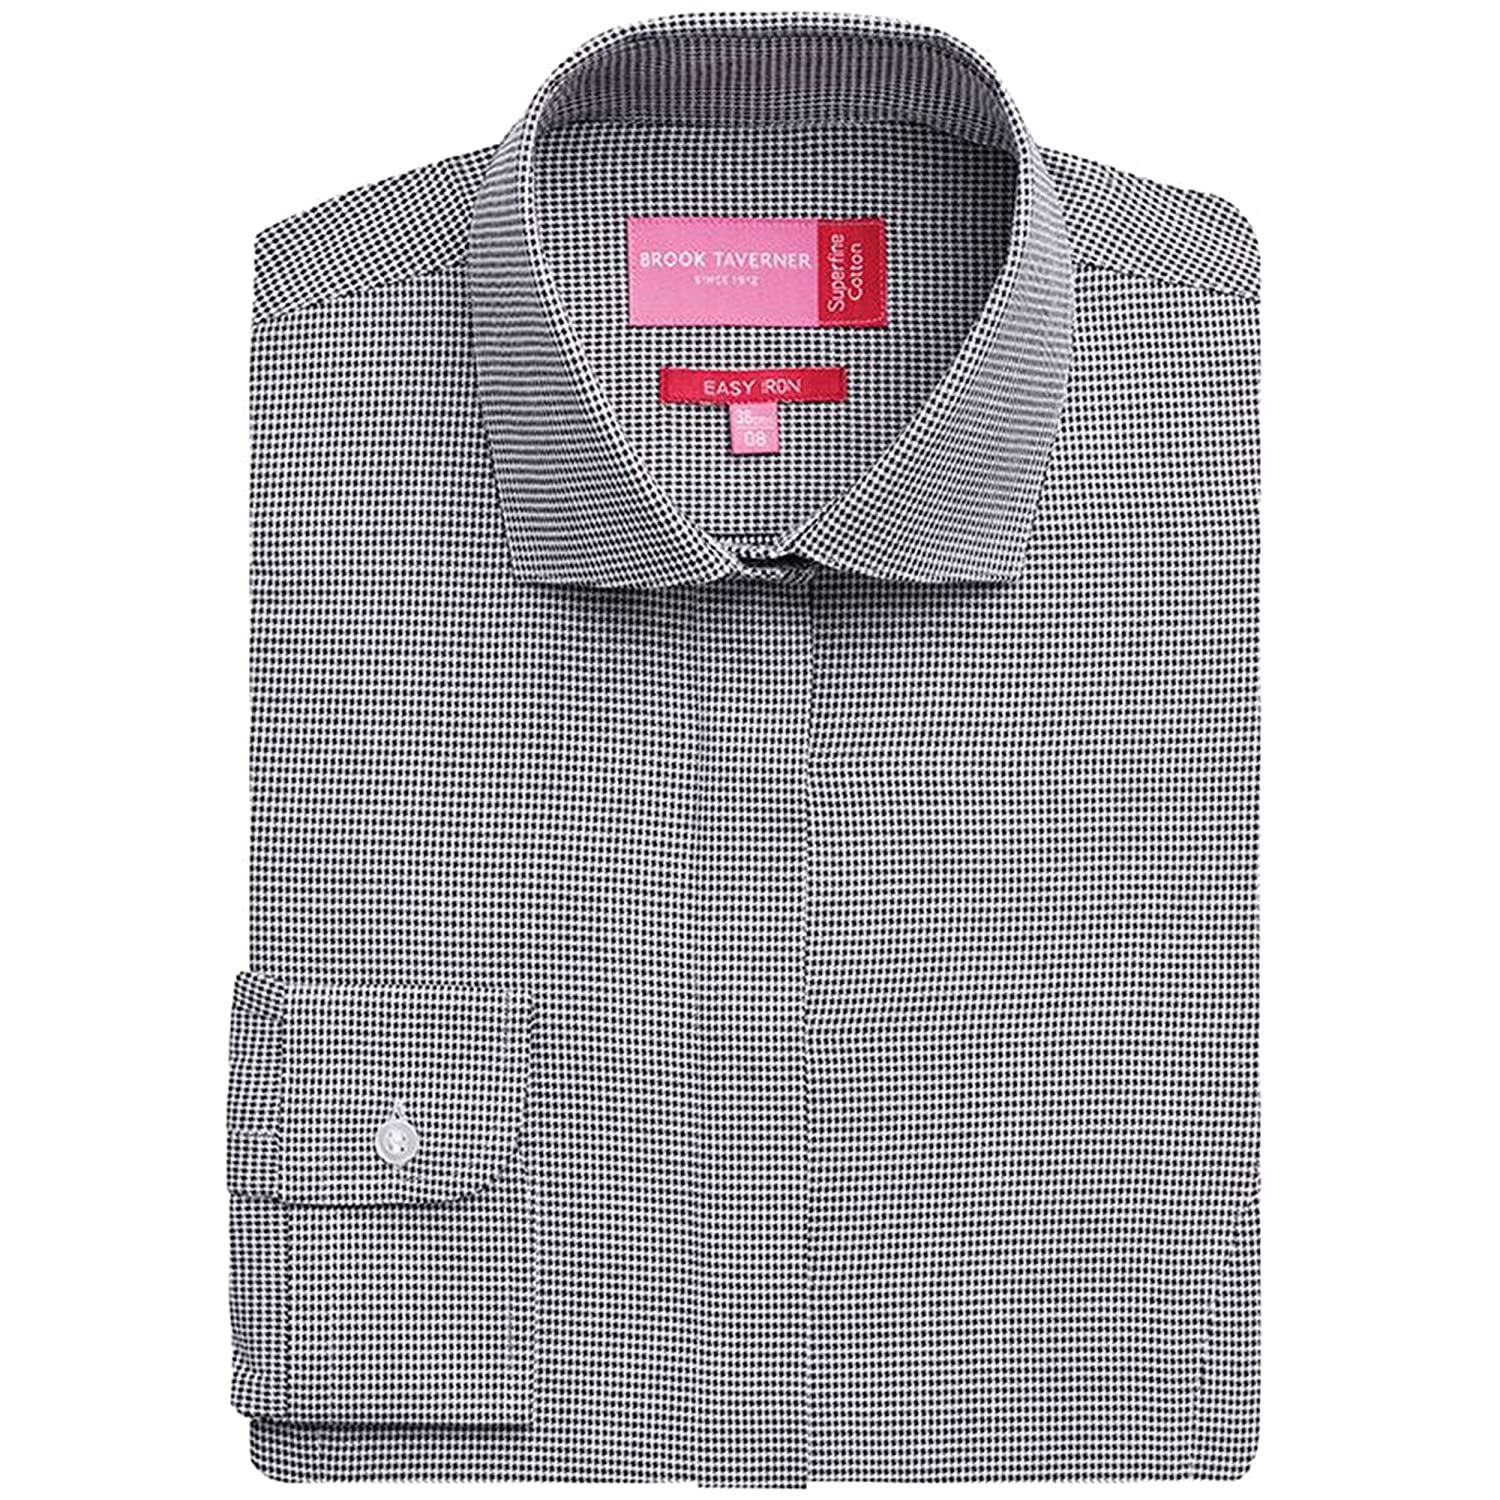 Brook Taverner Juno Long Sleeve Shirt